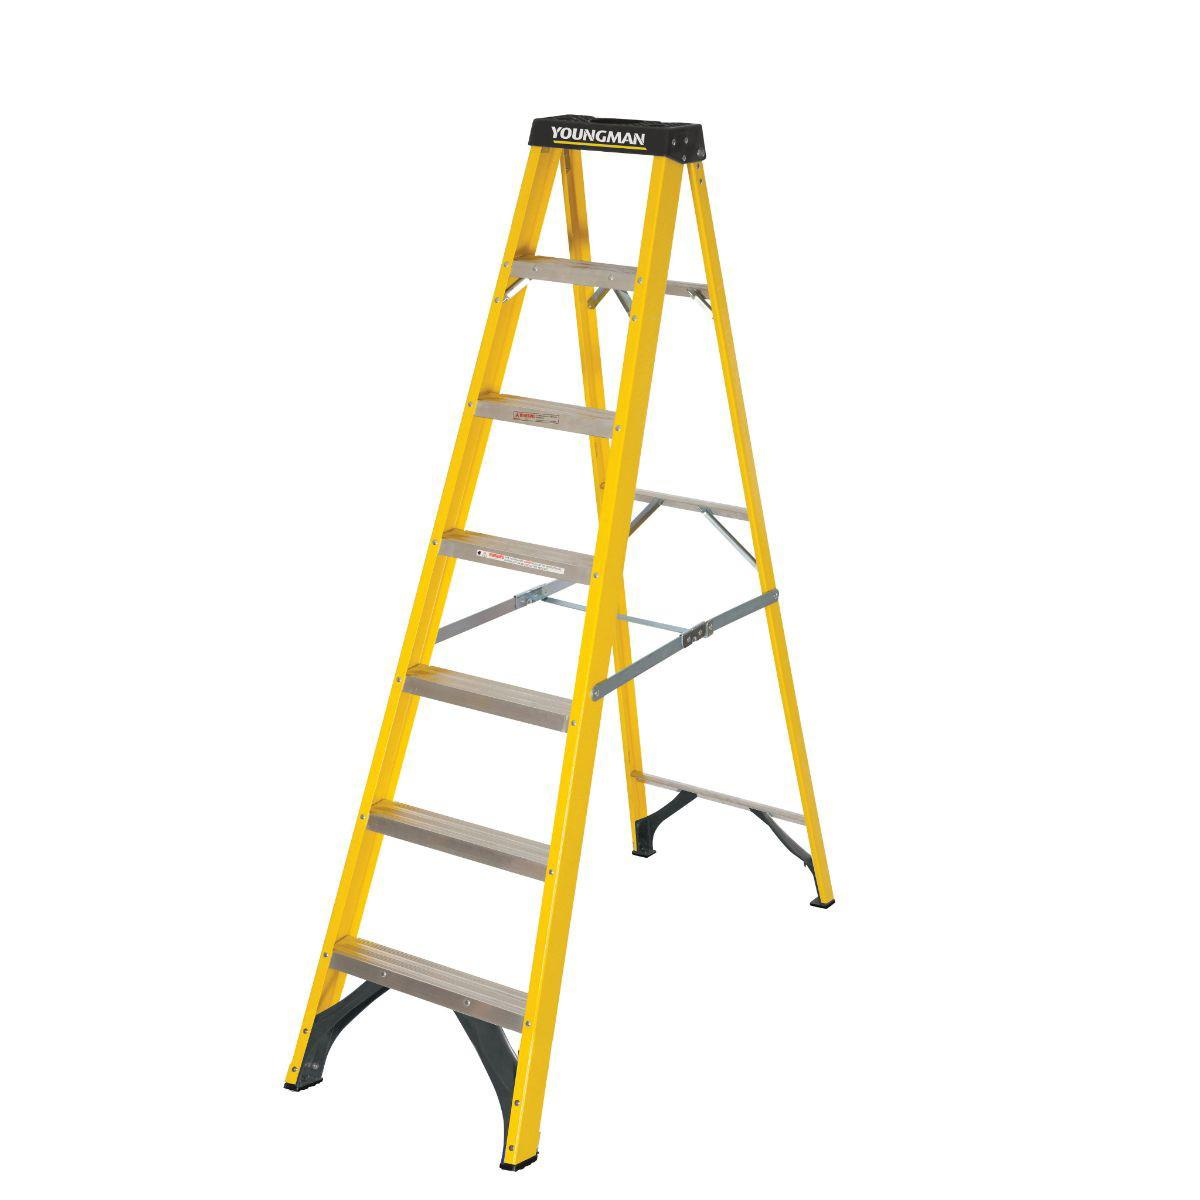 Youngman 52745718 S400 Glass Fibre Builders Step Ladder; EN131 2018; 7 Tread; Safe Working Height 2871mm